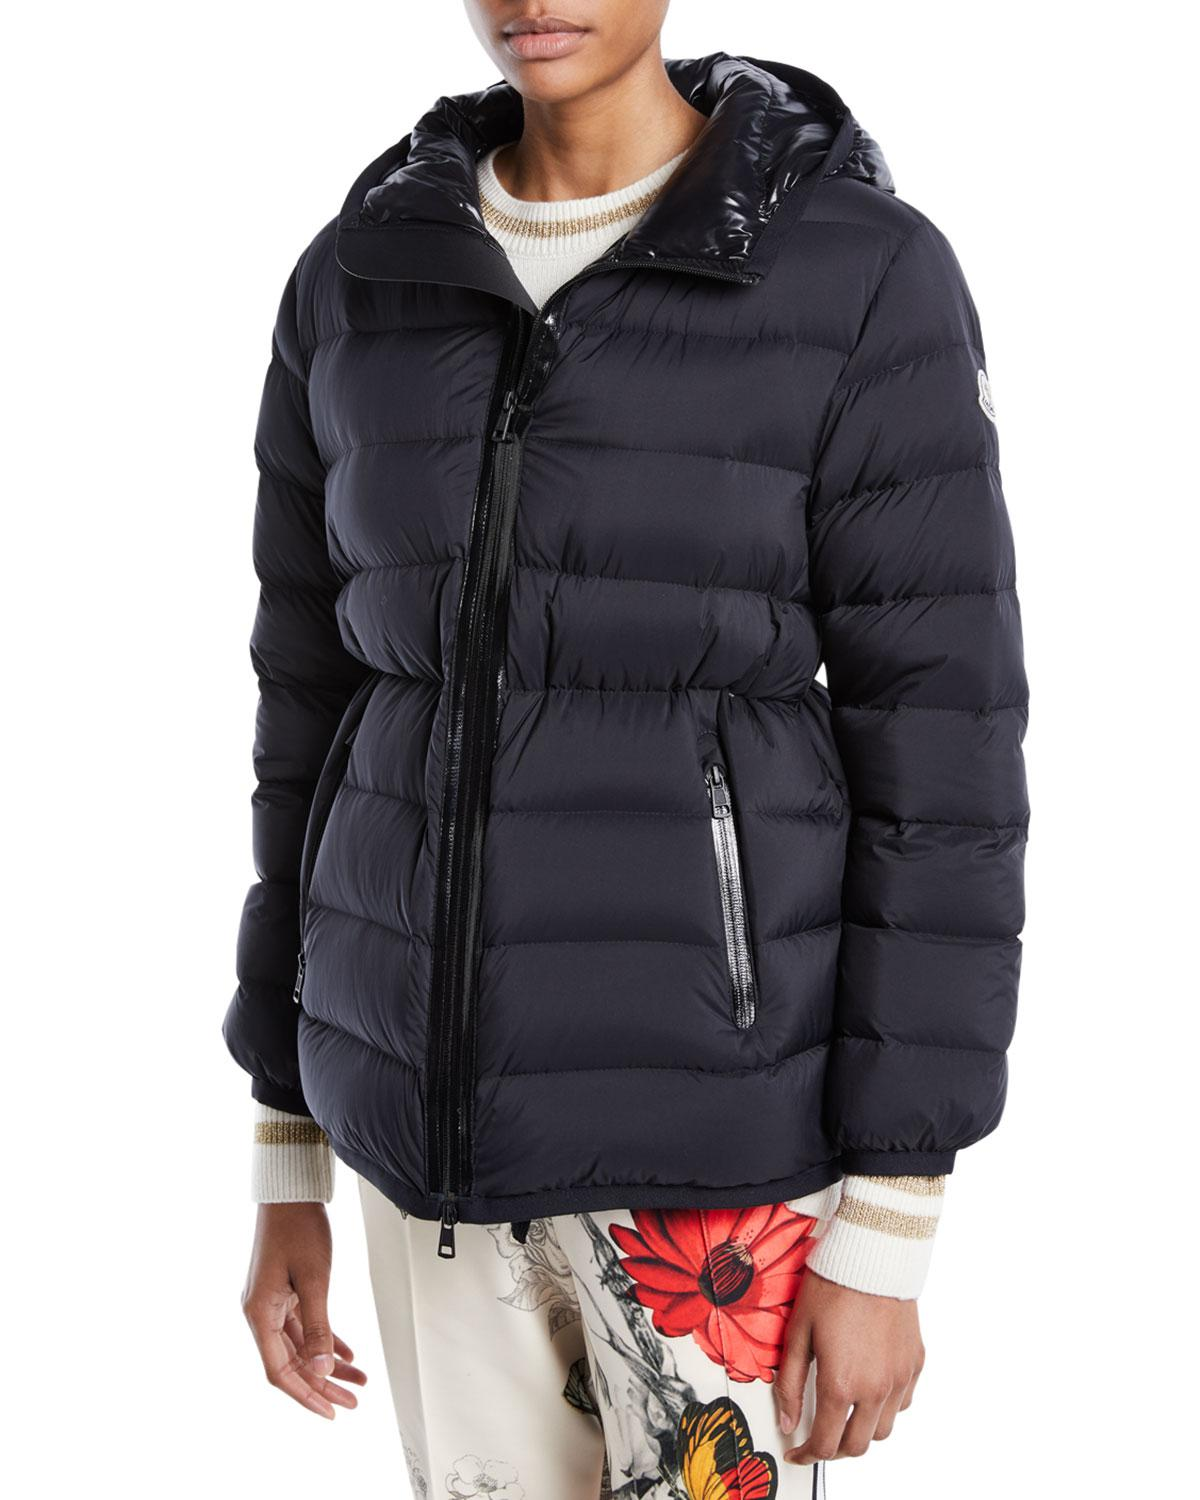 1b277a279 Moncler Goeland Cinched Puffer Jacket in Black - Lyst